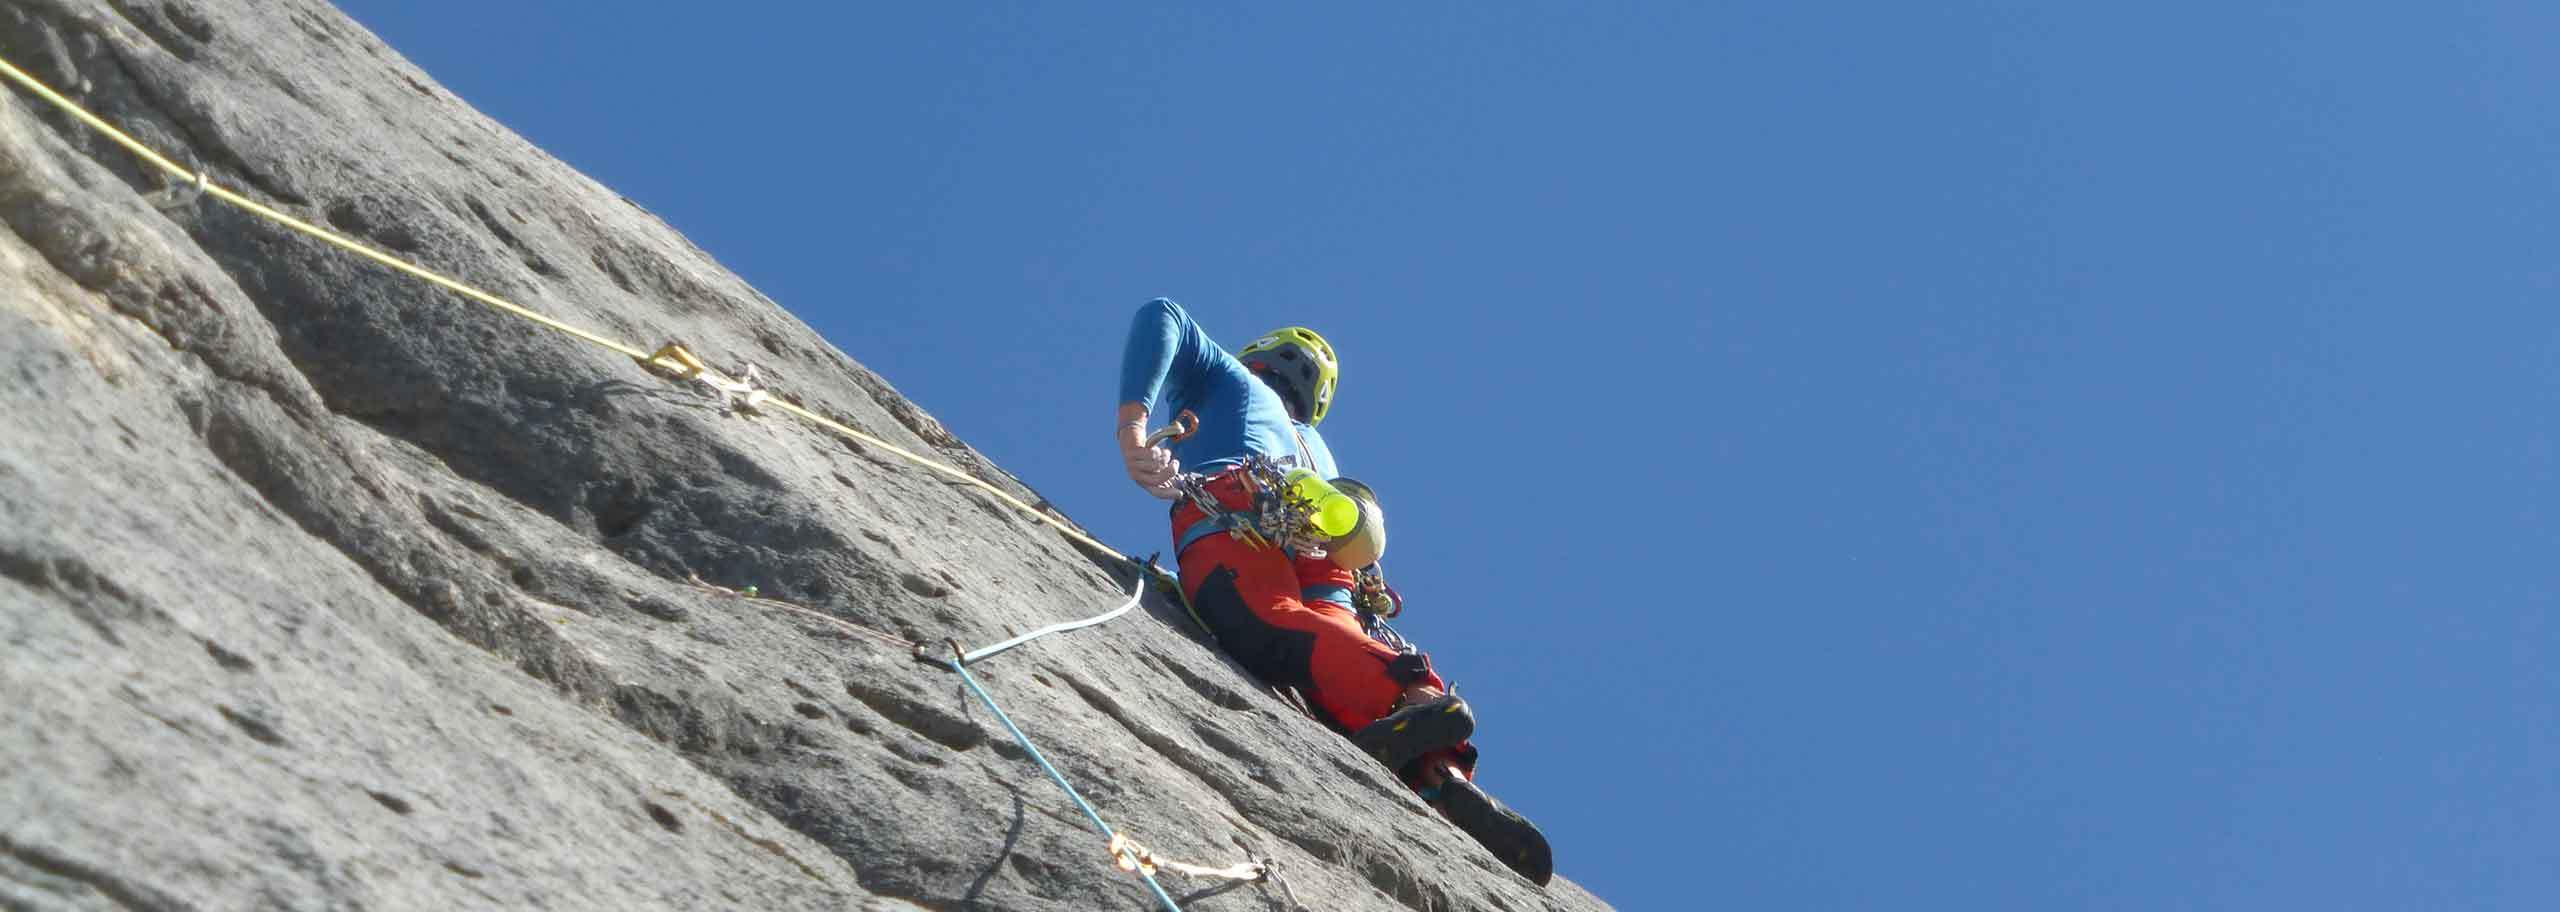 Rock Climbing in Cervinia, Matterhorn with a Mountain Guide